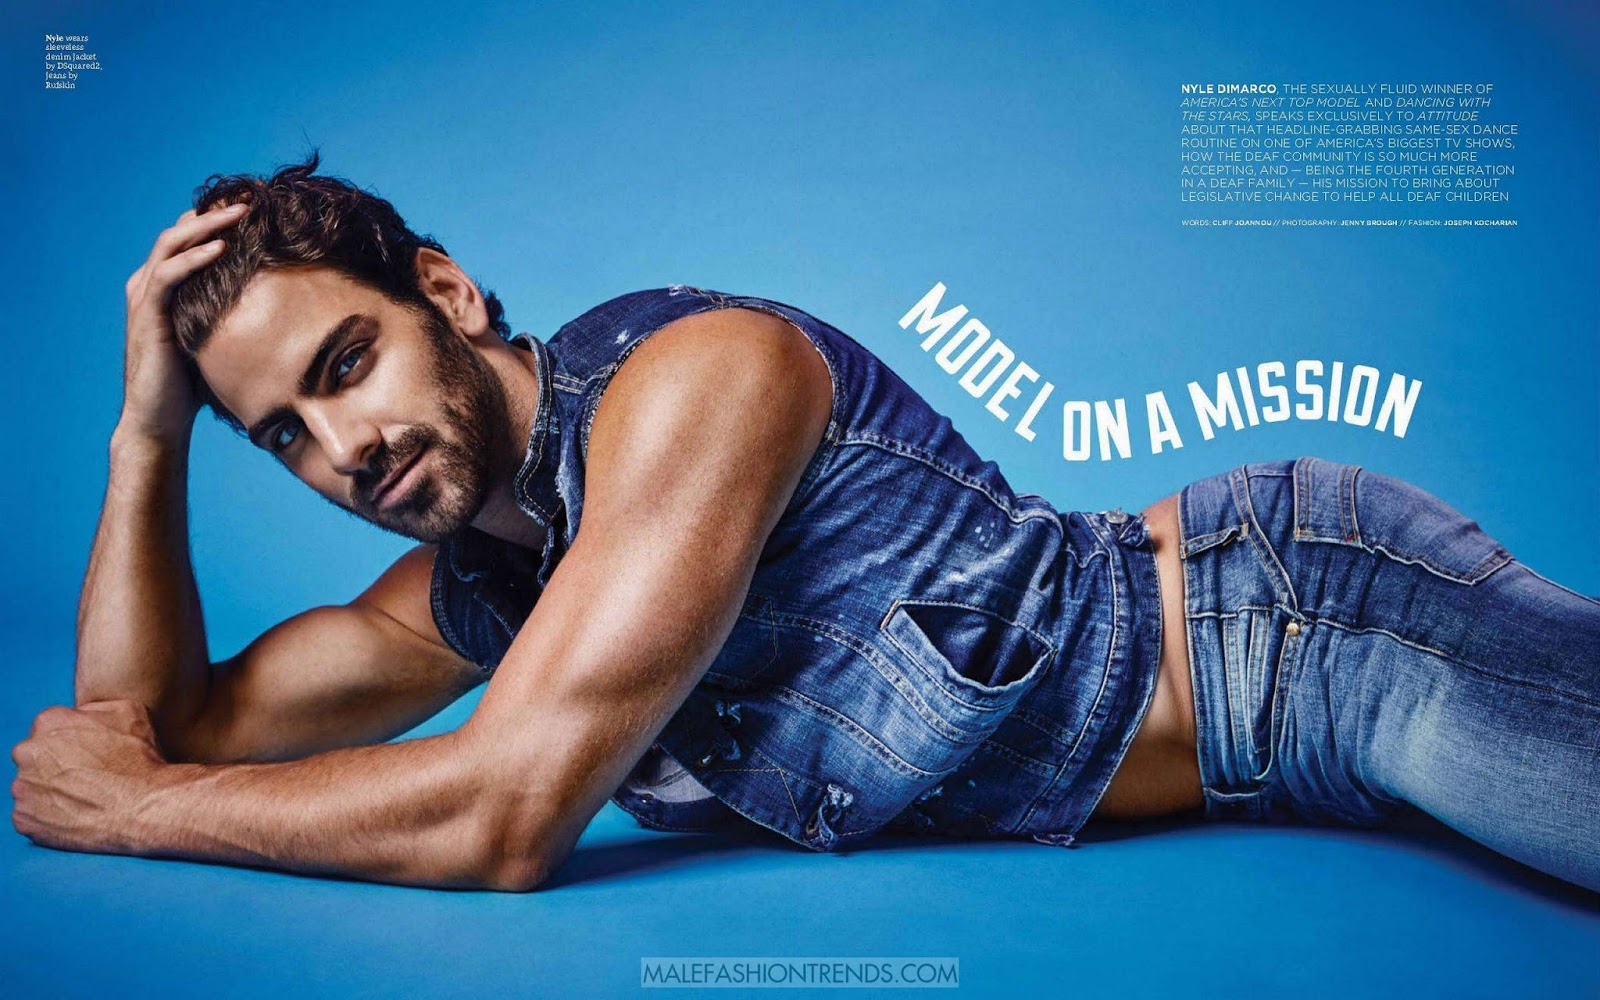 nyle-dimarco-by-jenny-brough-5